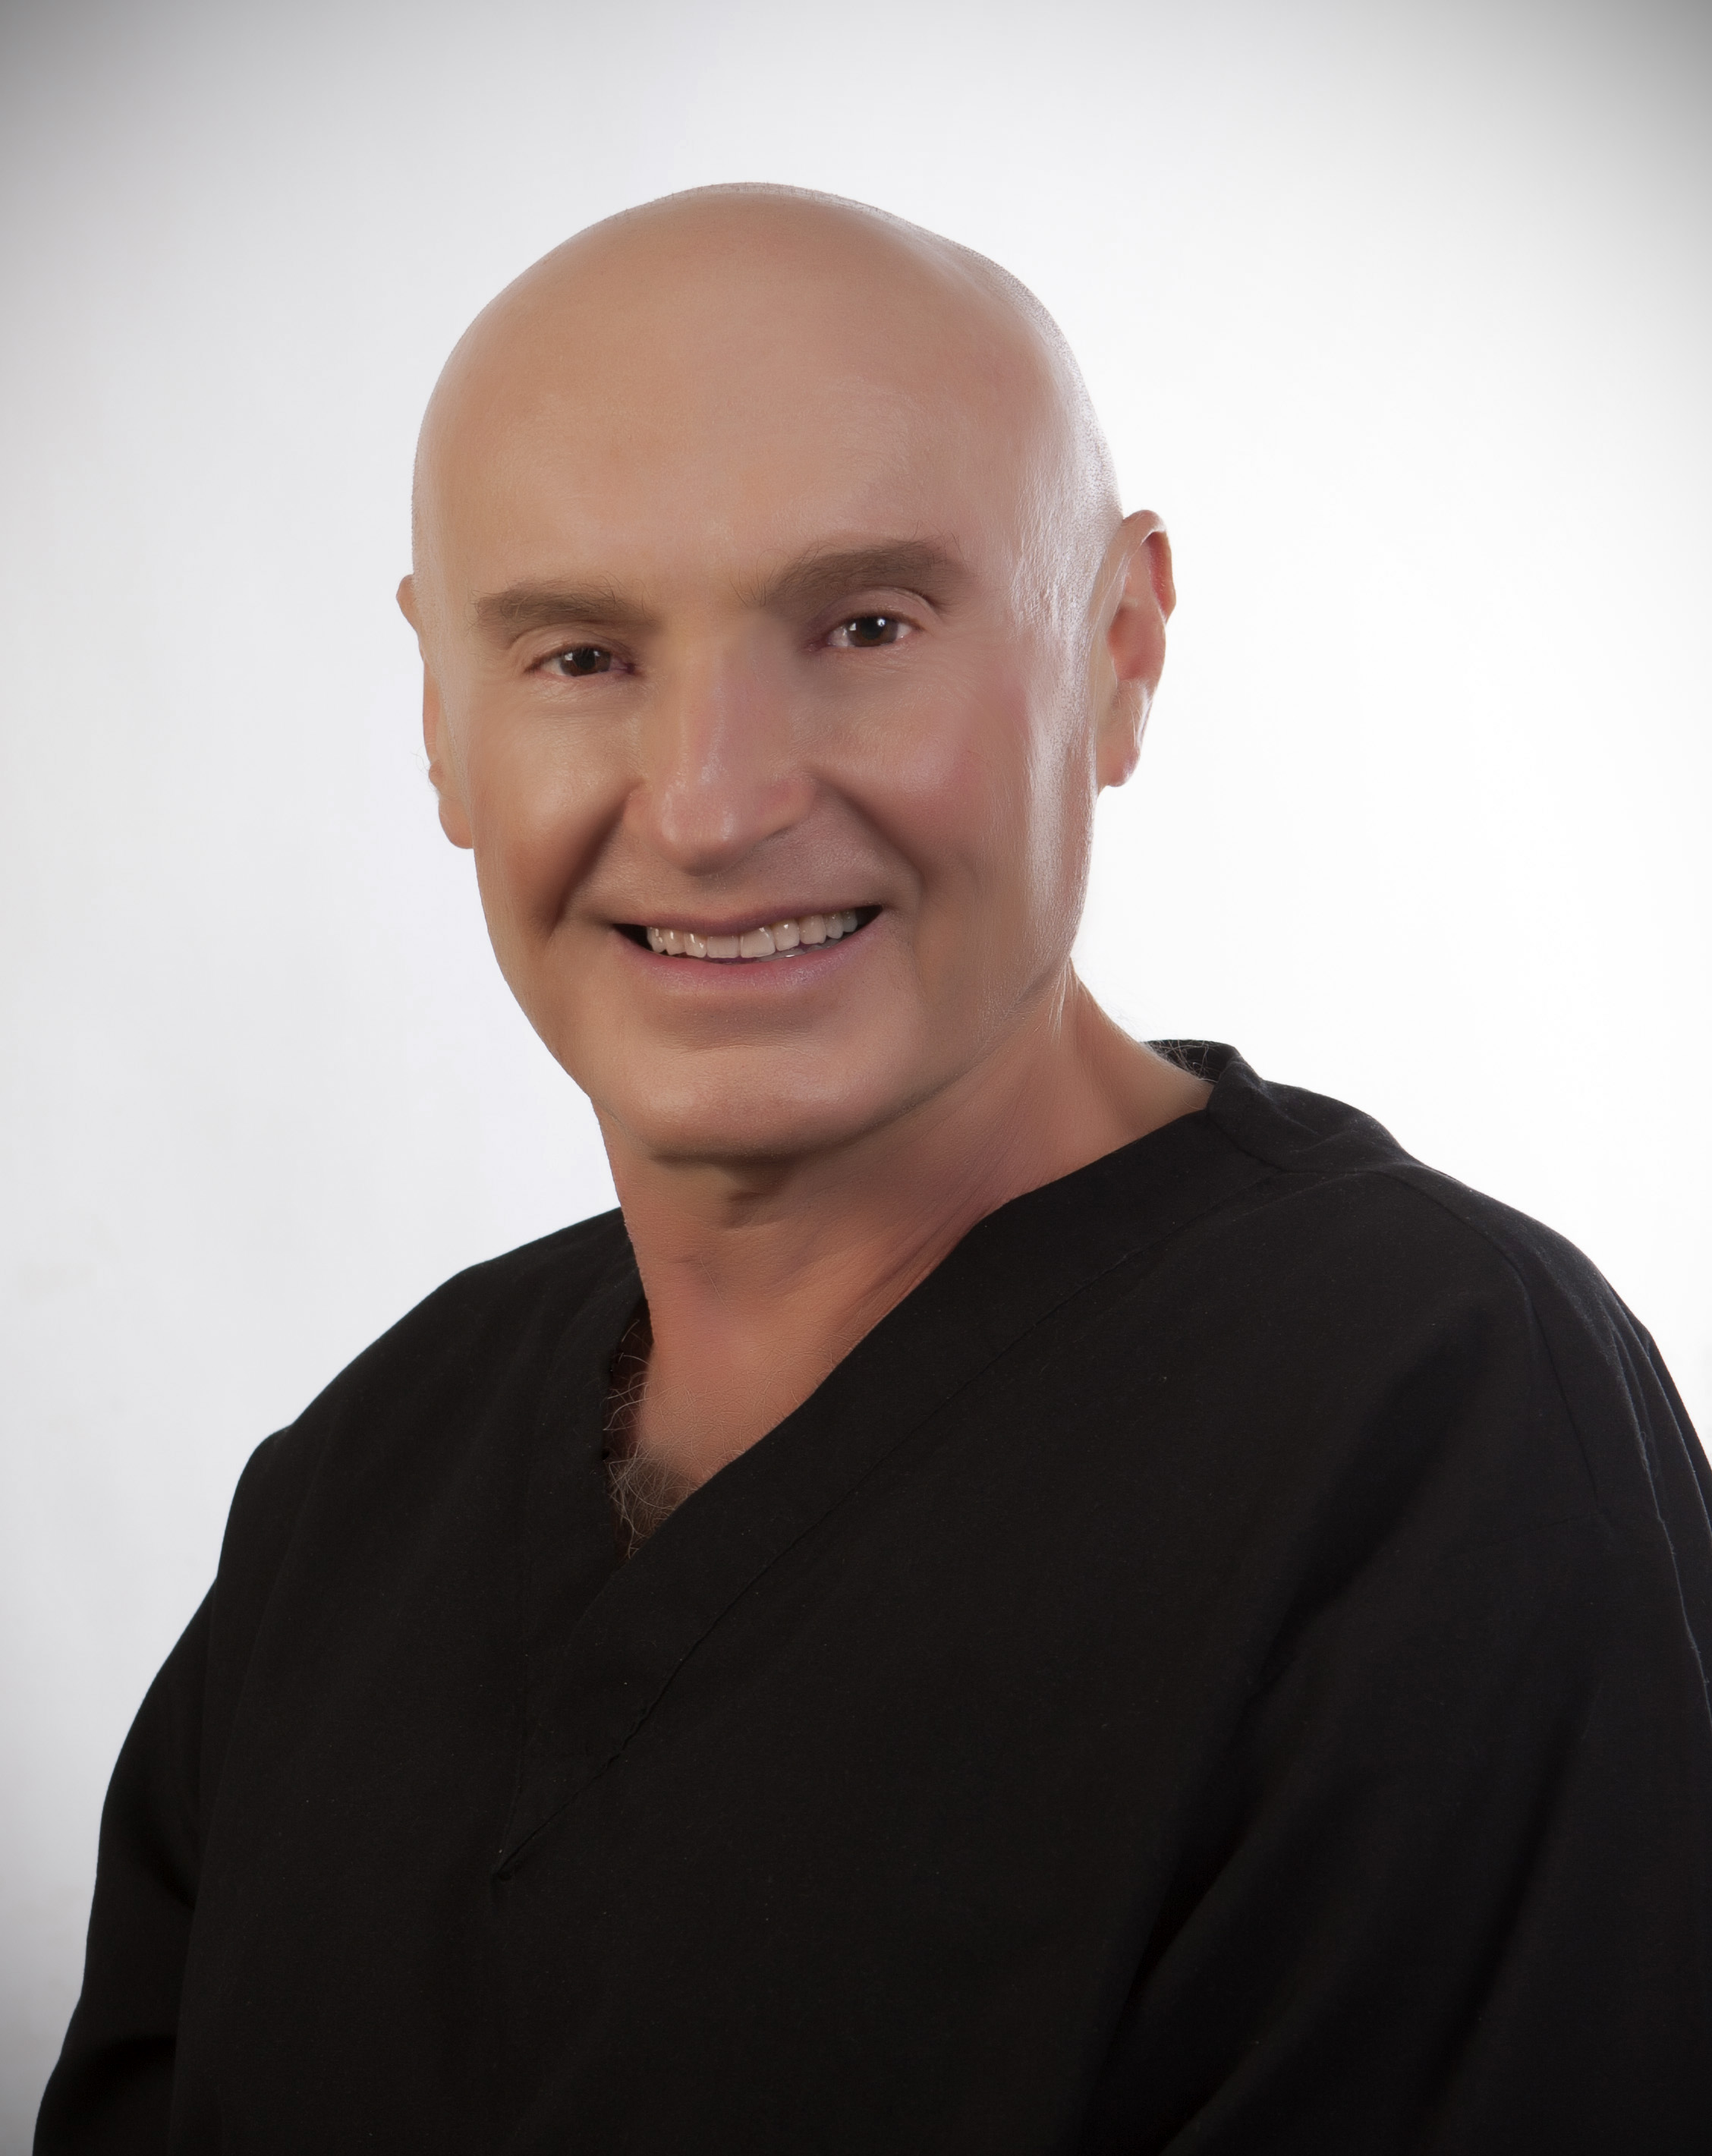 Dr. Marvin Shienbaum, MD